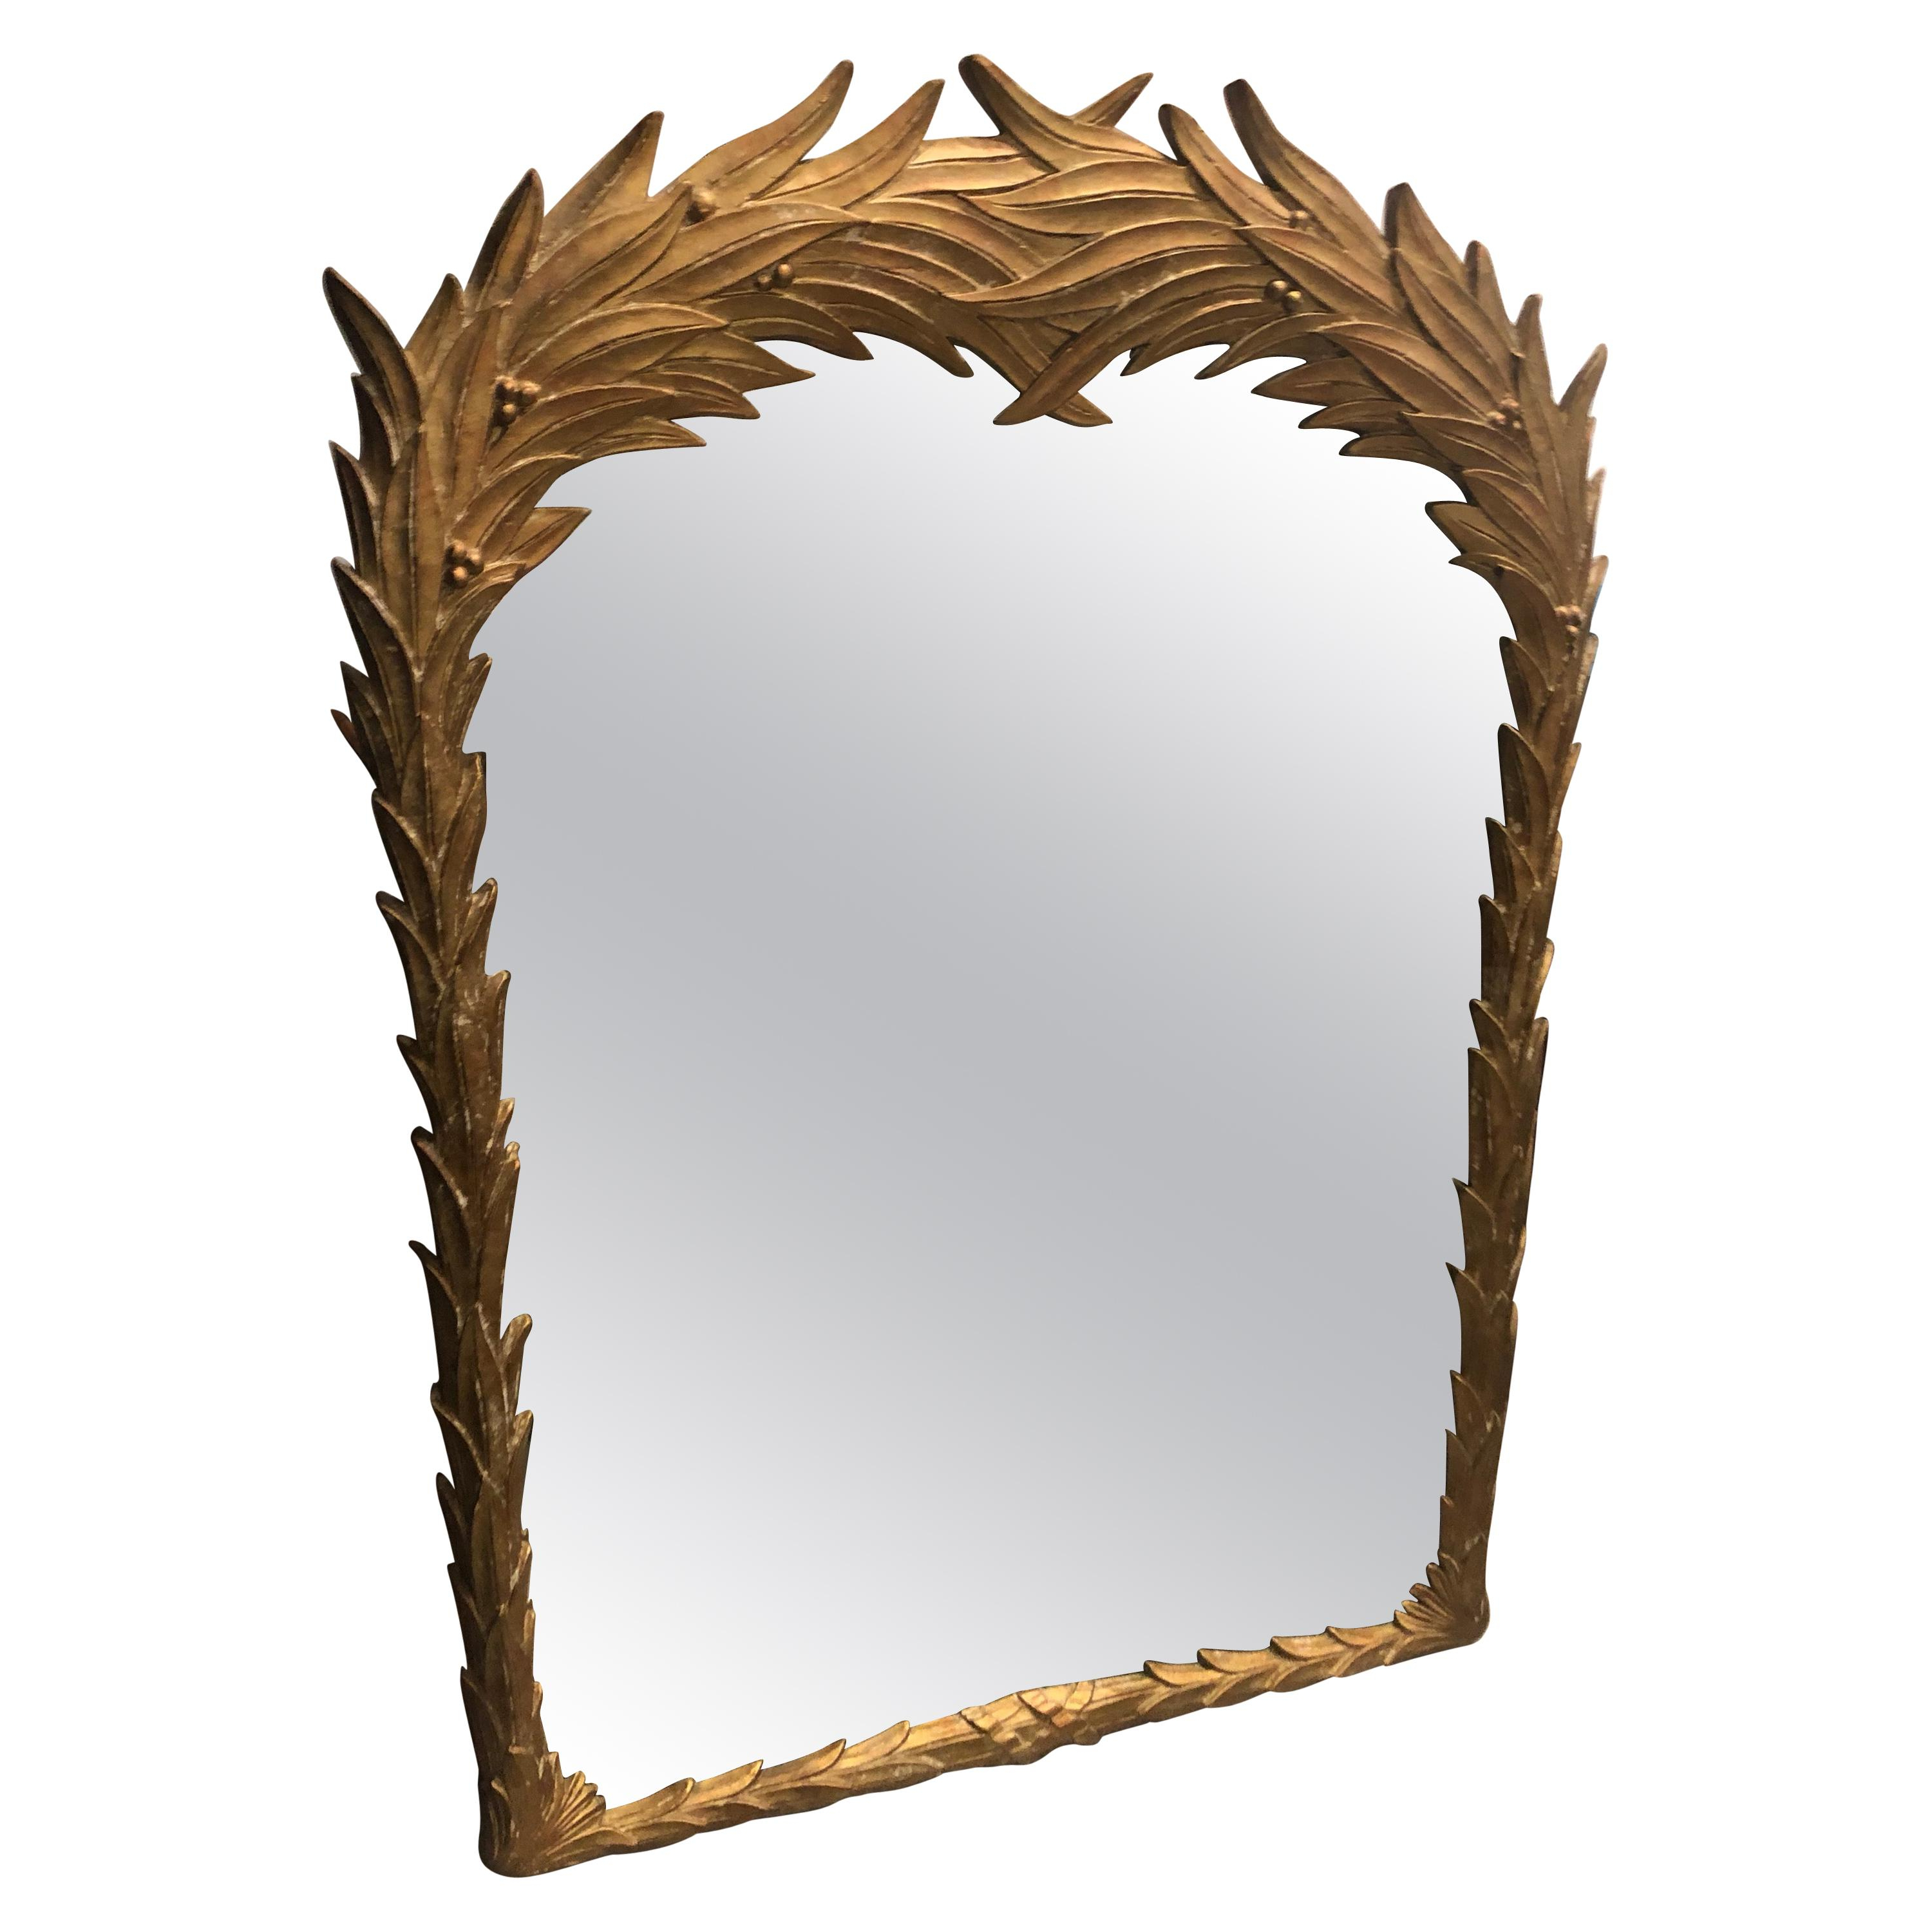 Tropical Wall Mirrors With Regard To Most Recently Released Vintage Palm Frond Wall Mirror Leaf Serge Roche Style Tropical Palm Beach (View 17 of 20)